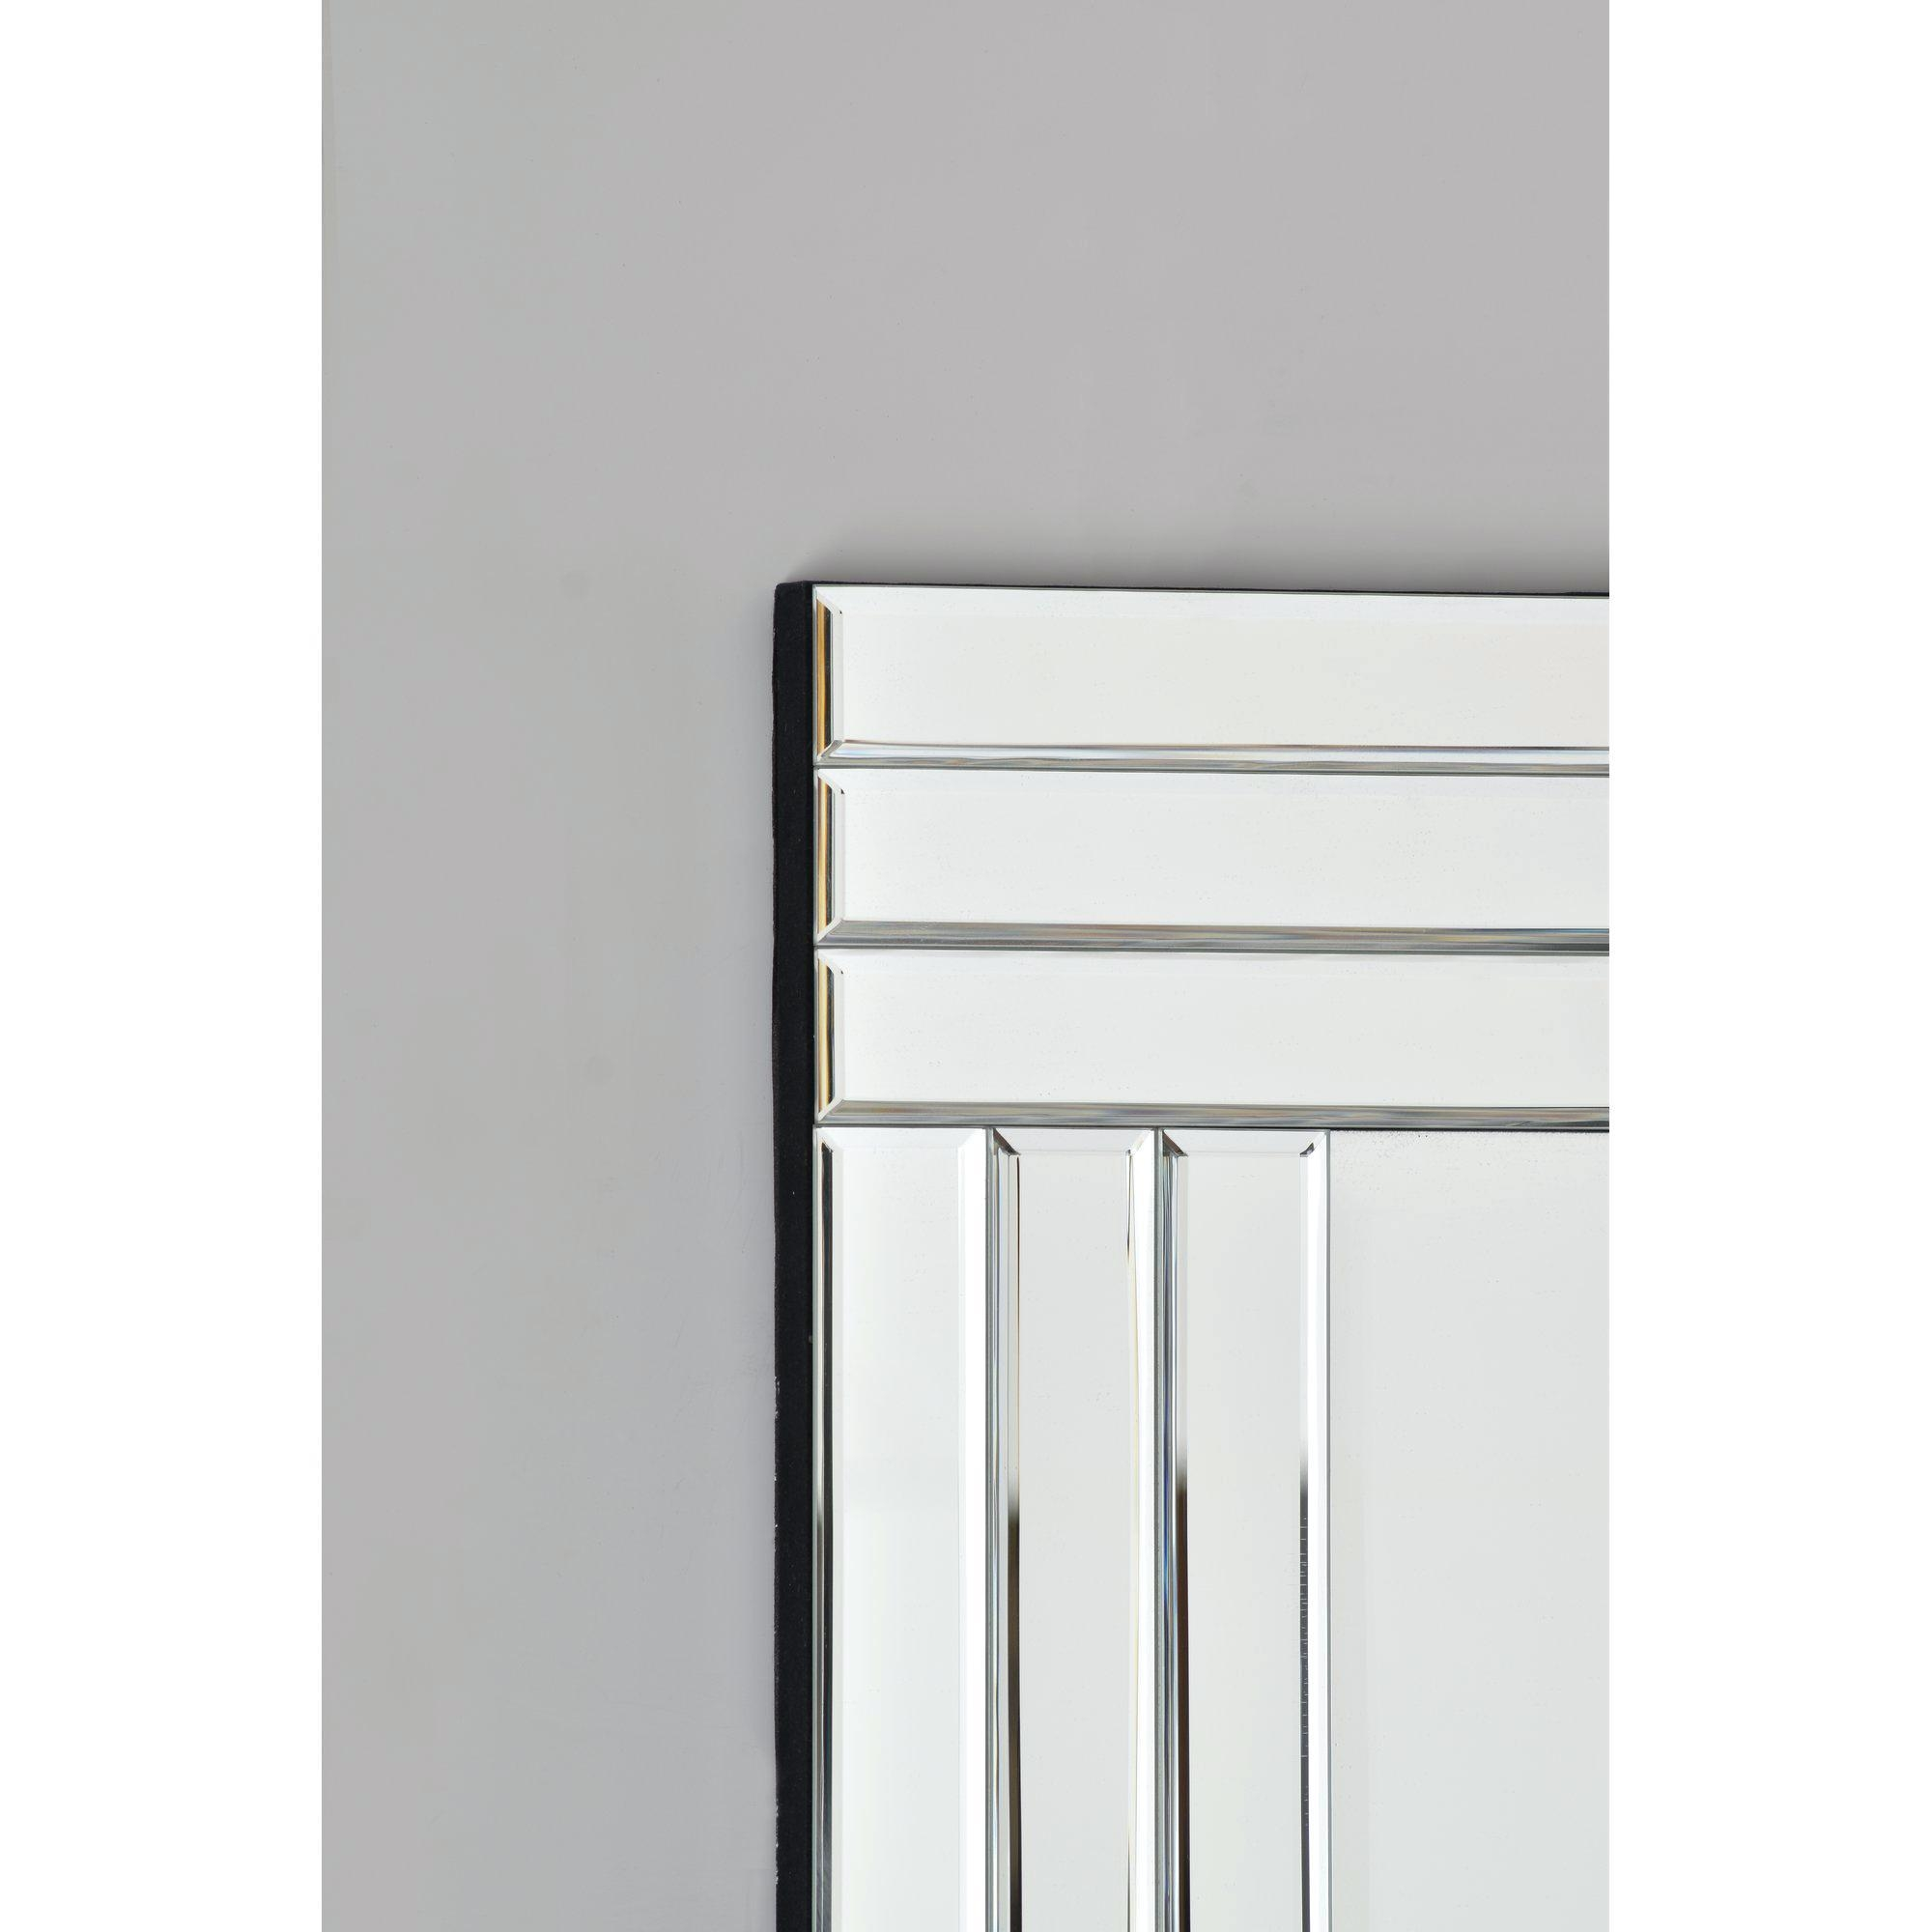 Details About Art Nouveau Ceramic Decorative Wallart Wall Mirrors With Regard To Art Deco Wall Mirror (Image 11 of 20)